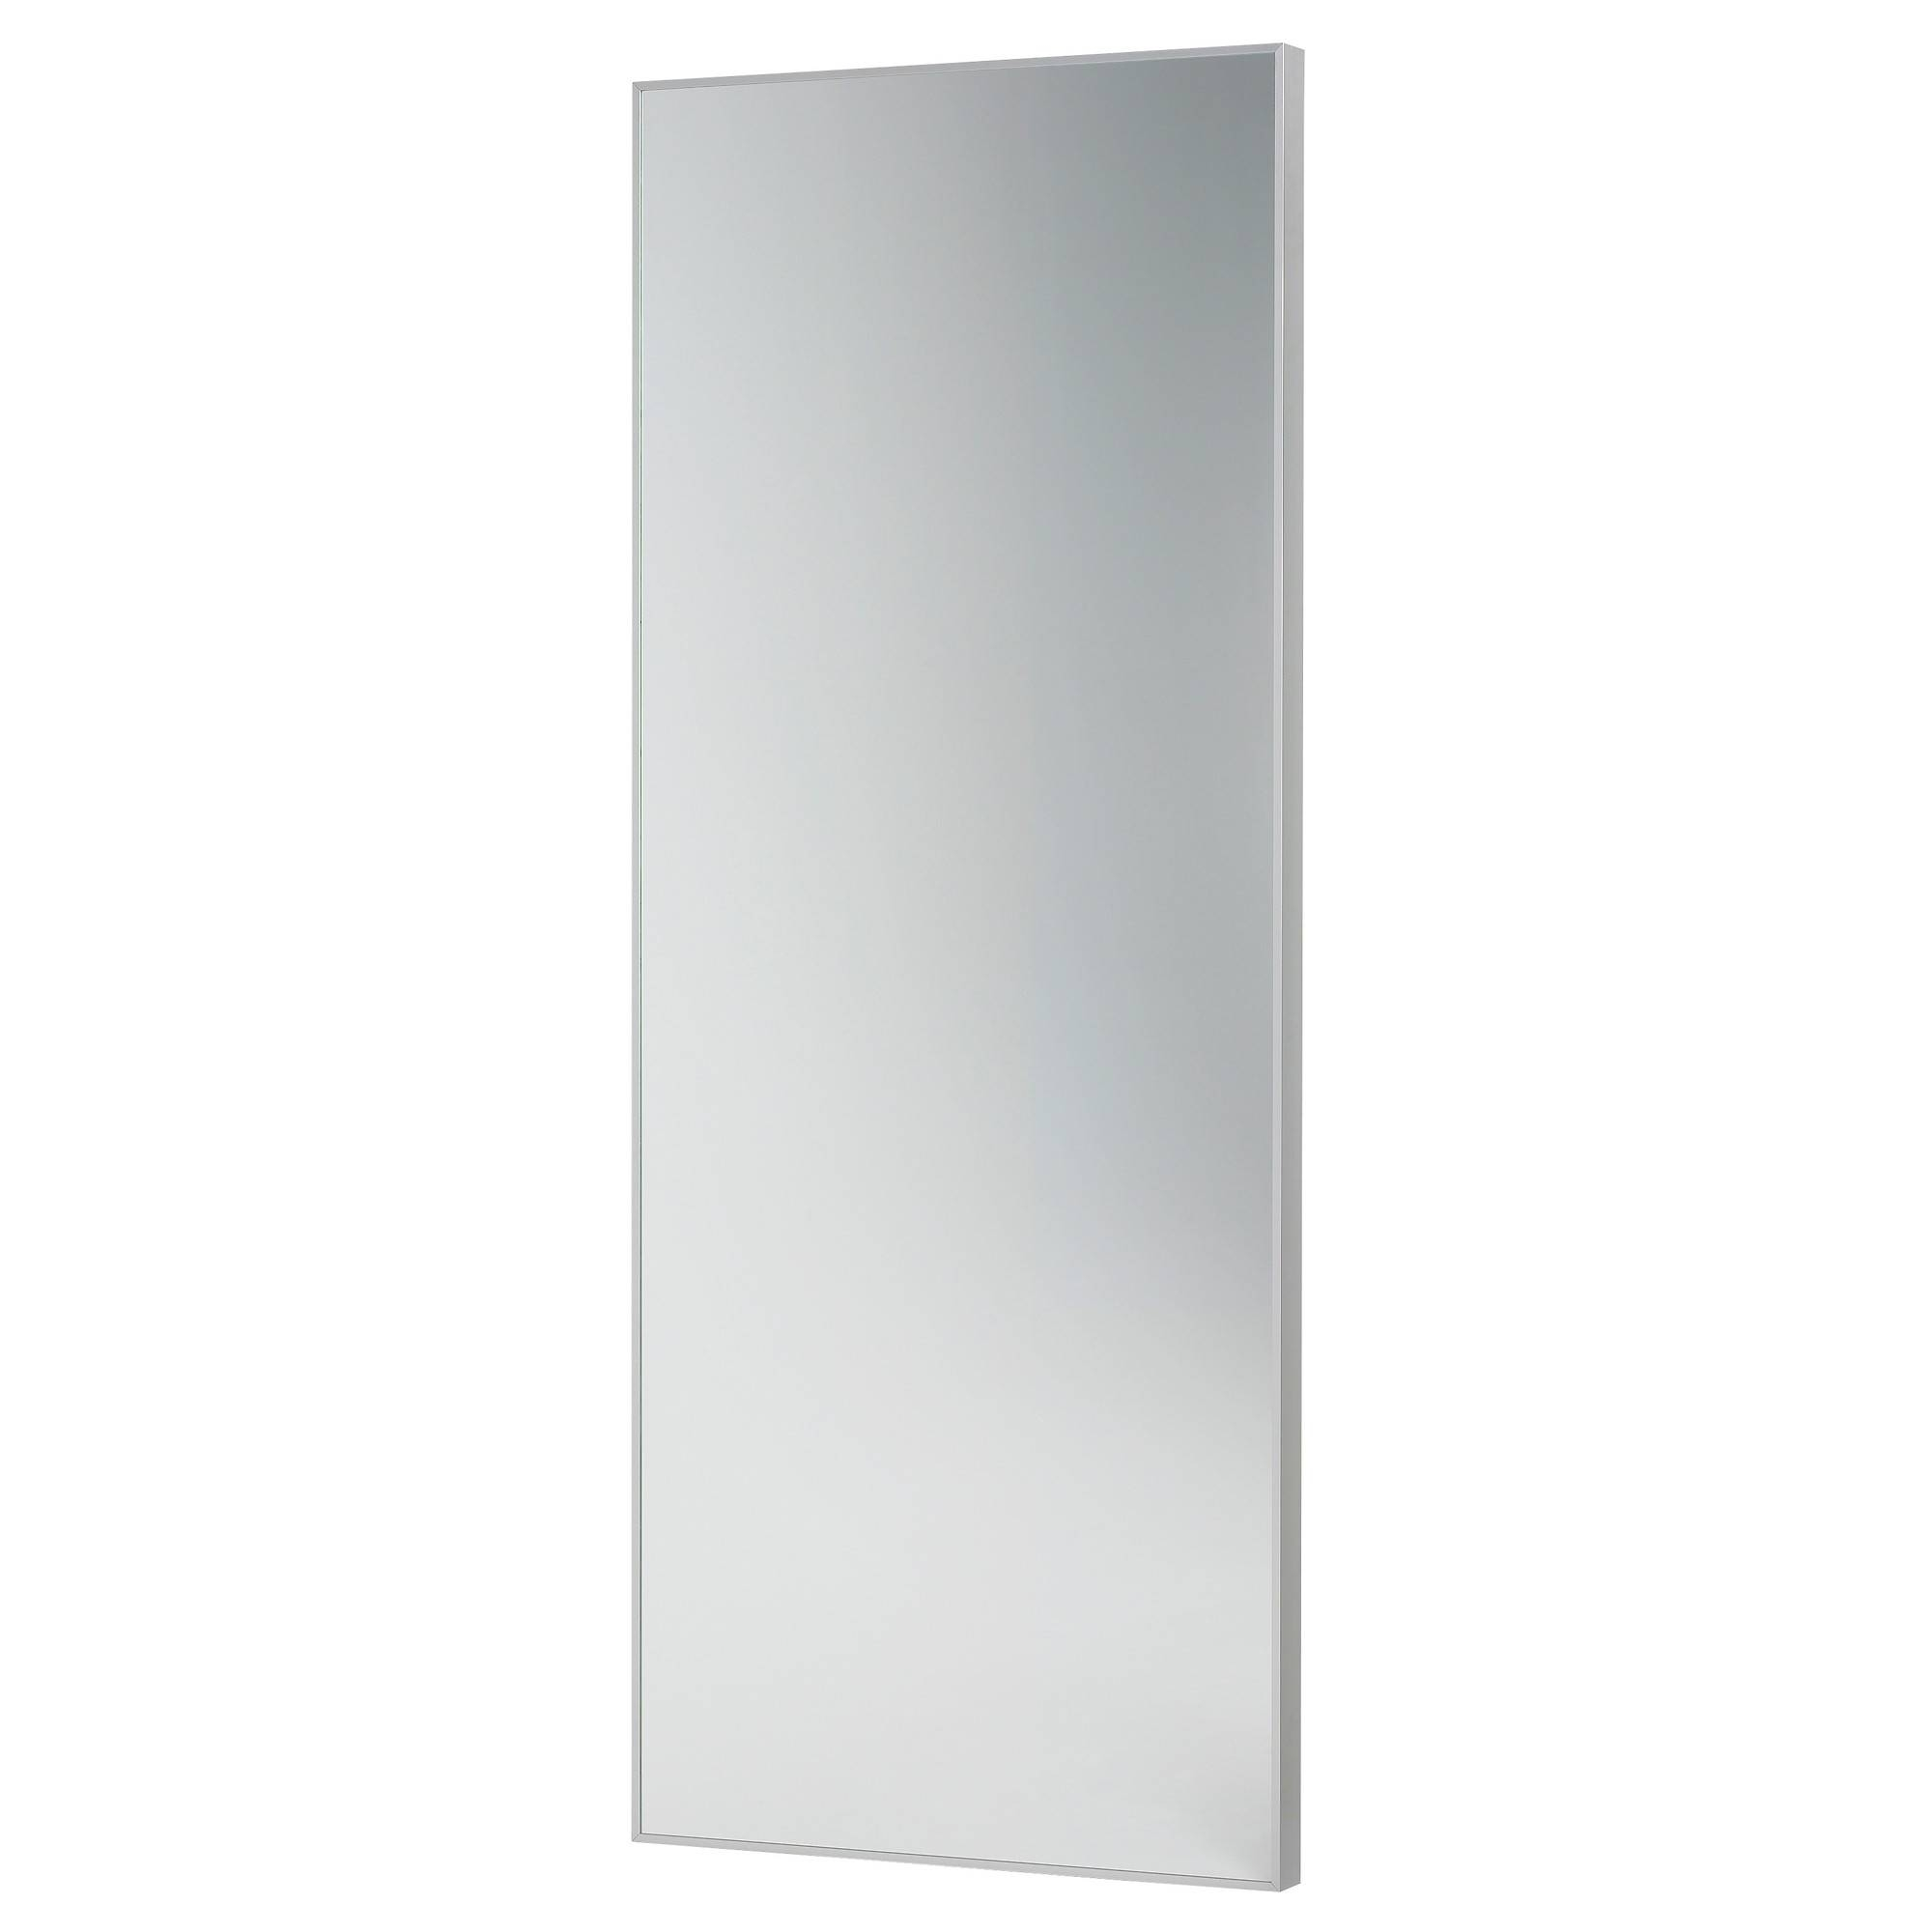 Full-Length Mirrors - Ikea with Long Length Mirrors (Image 13 of 25)